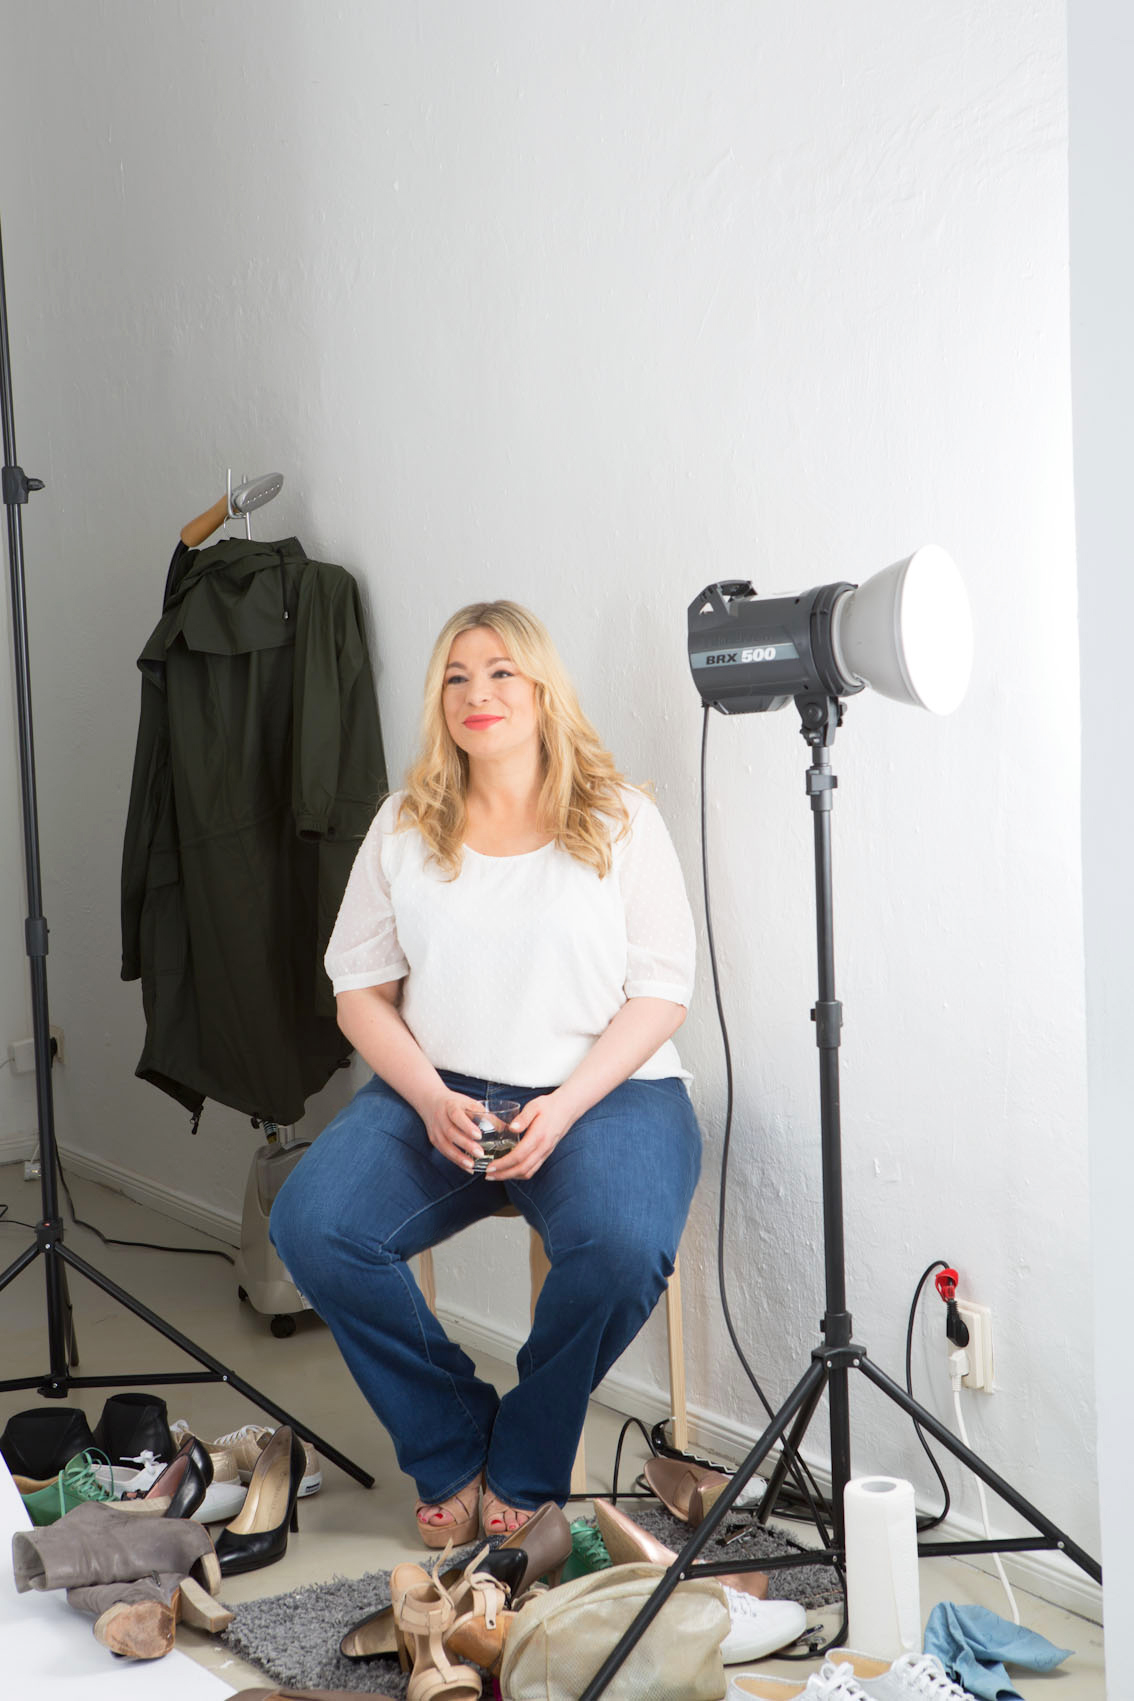 caterina-model-plusmodel-shooting-Plussize-Model-Plusmodel-Caterina-pogorzelski-Megabambi-Onlineshop-Job